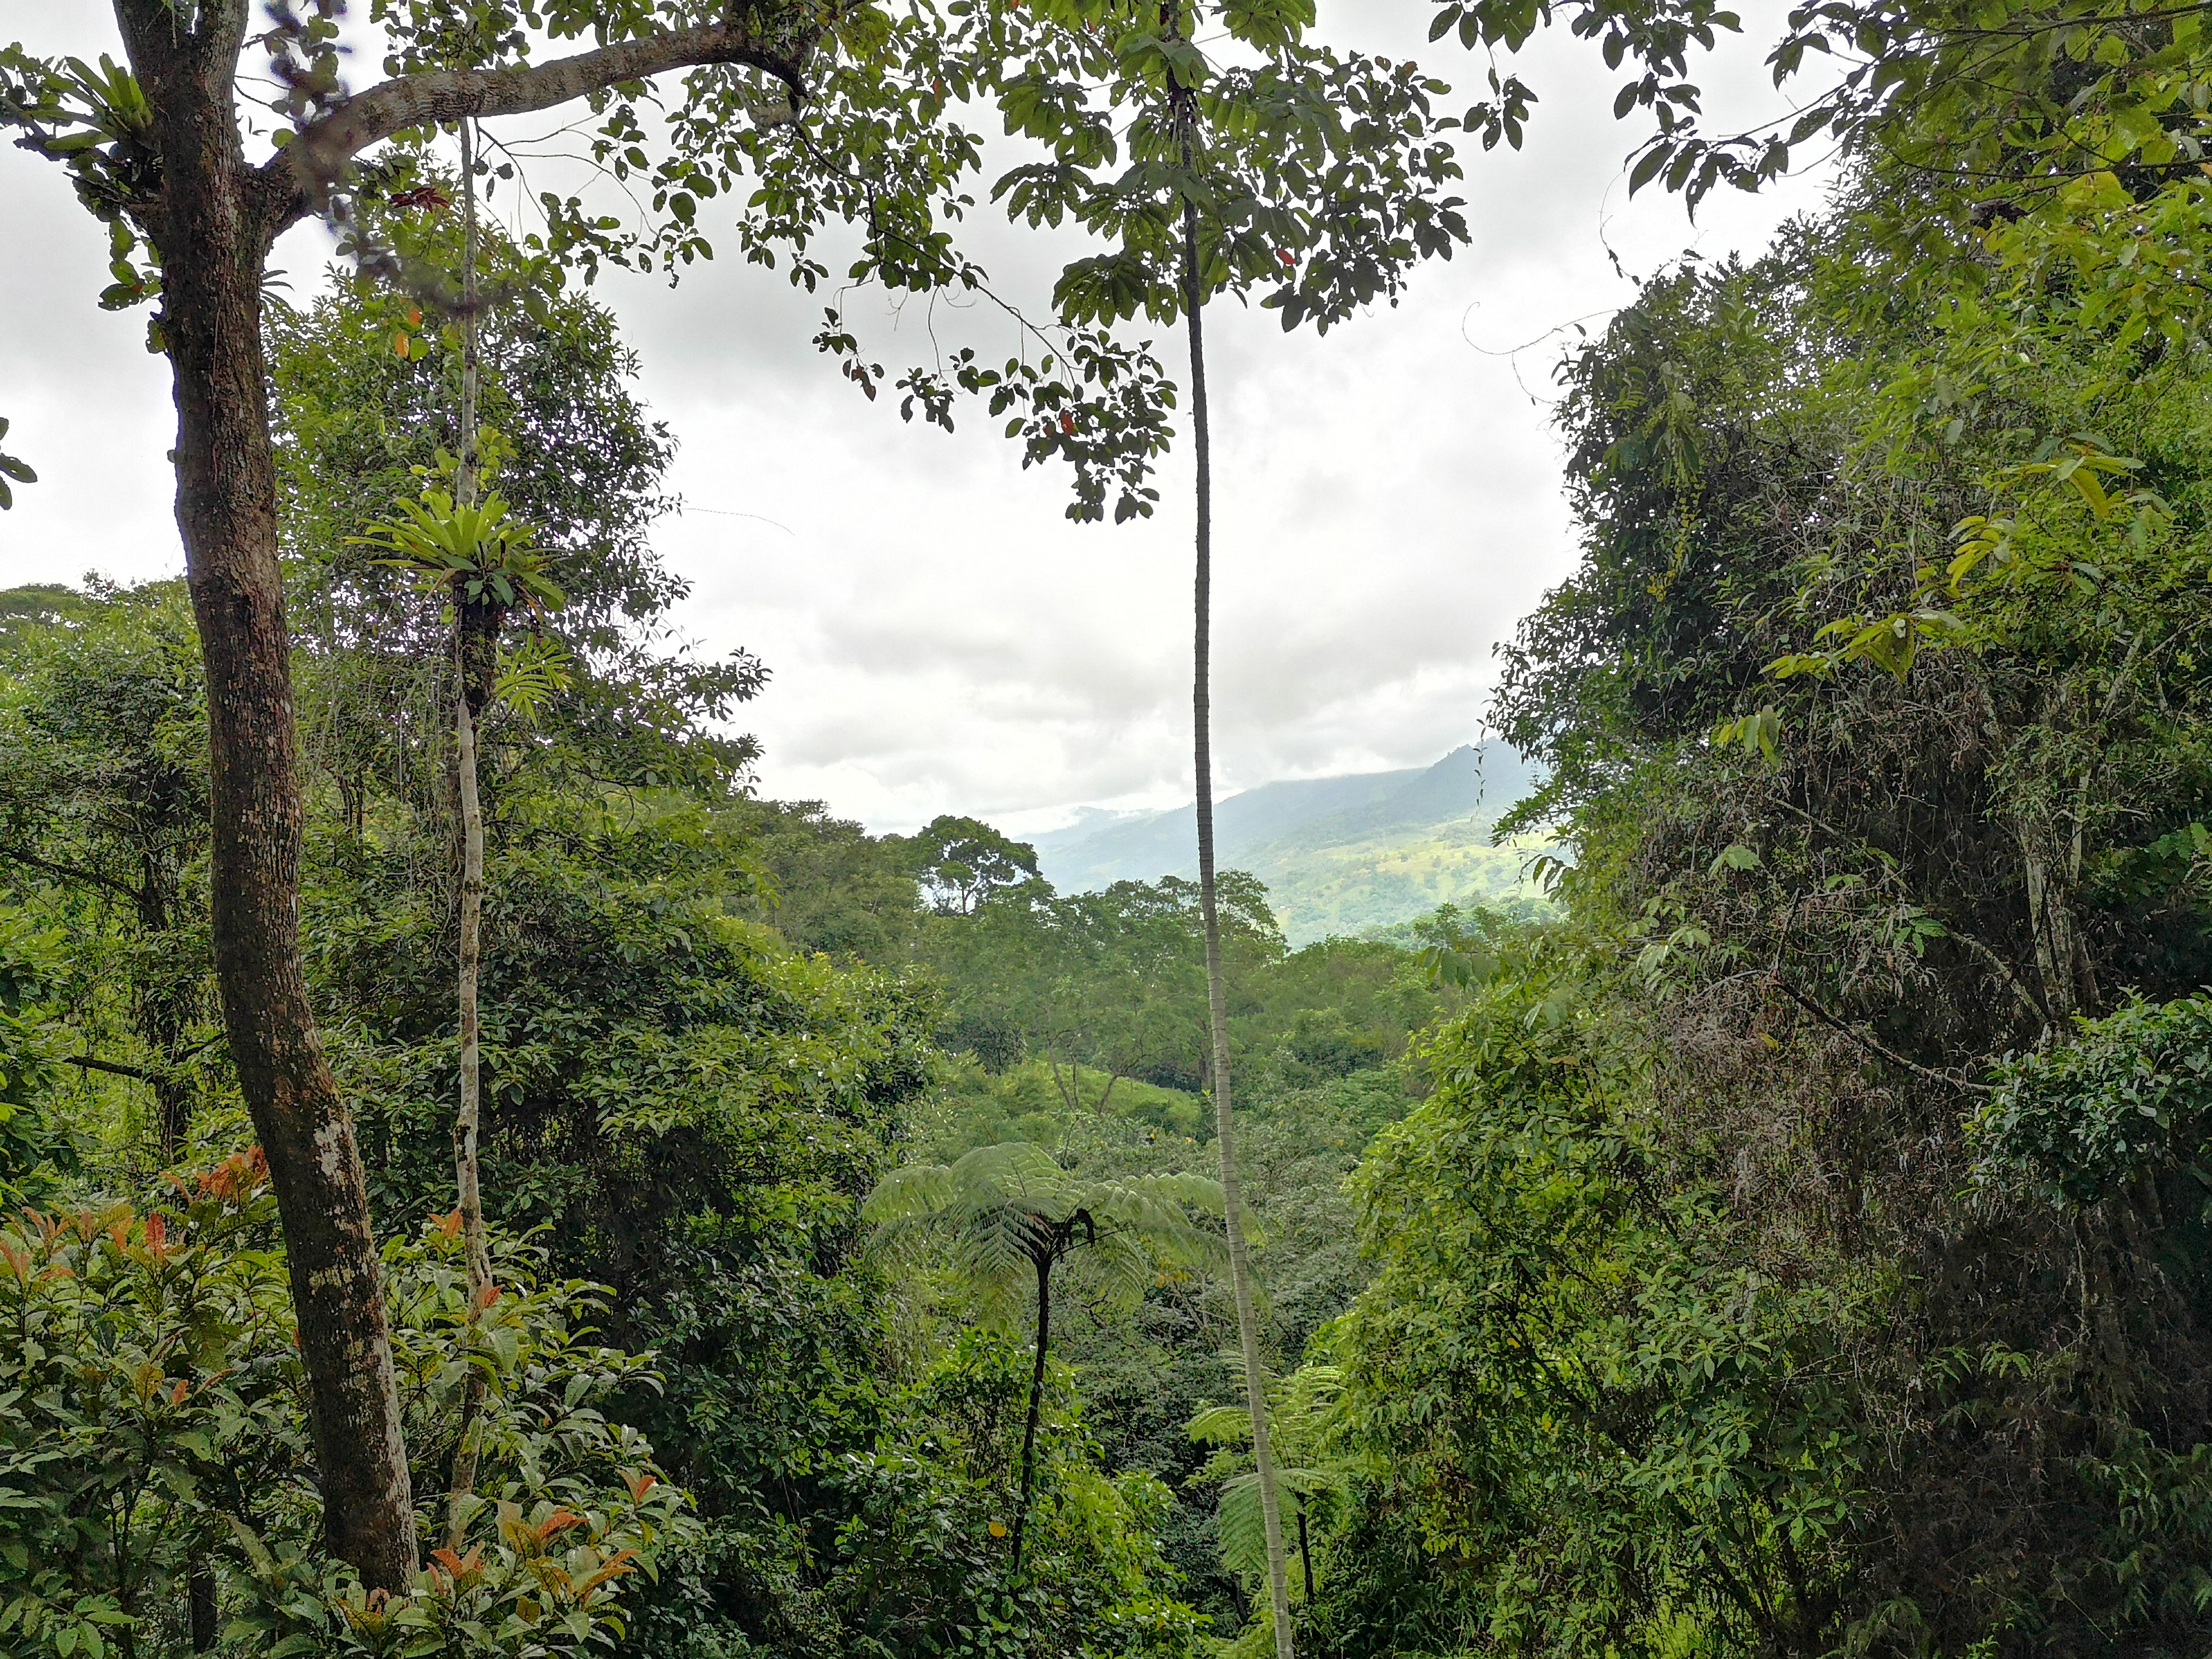 Lot with a creek on part of the property, La Alfombra, Perez Zeledon